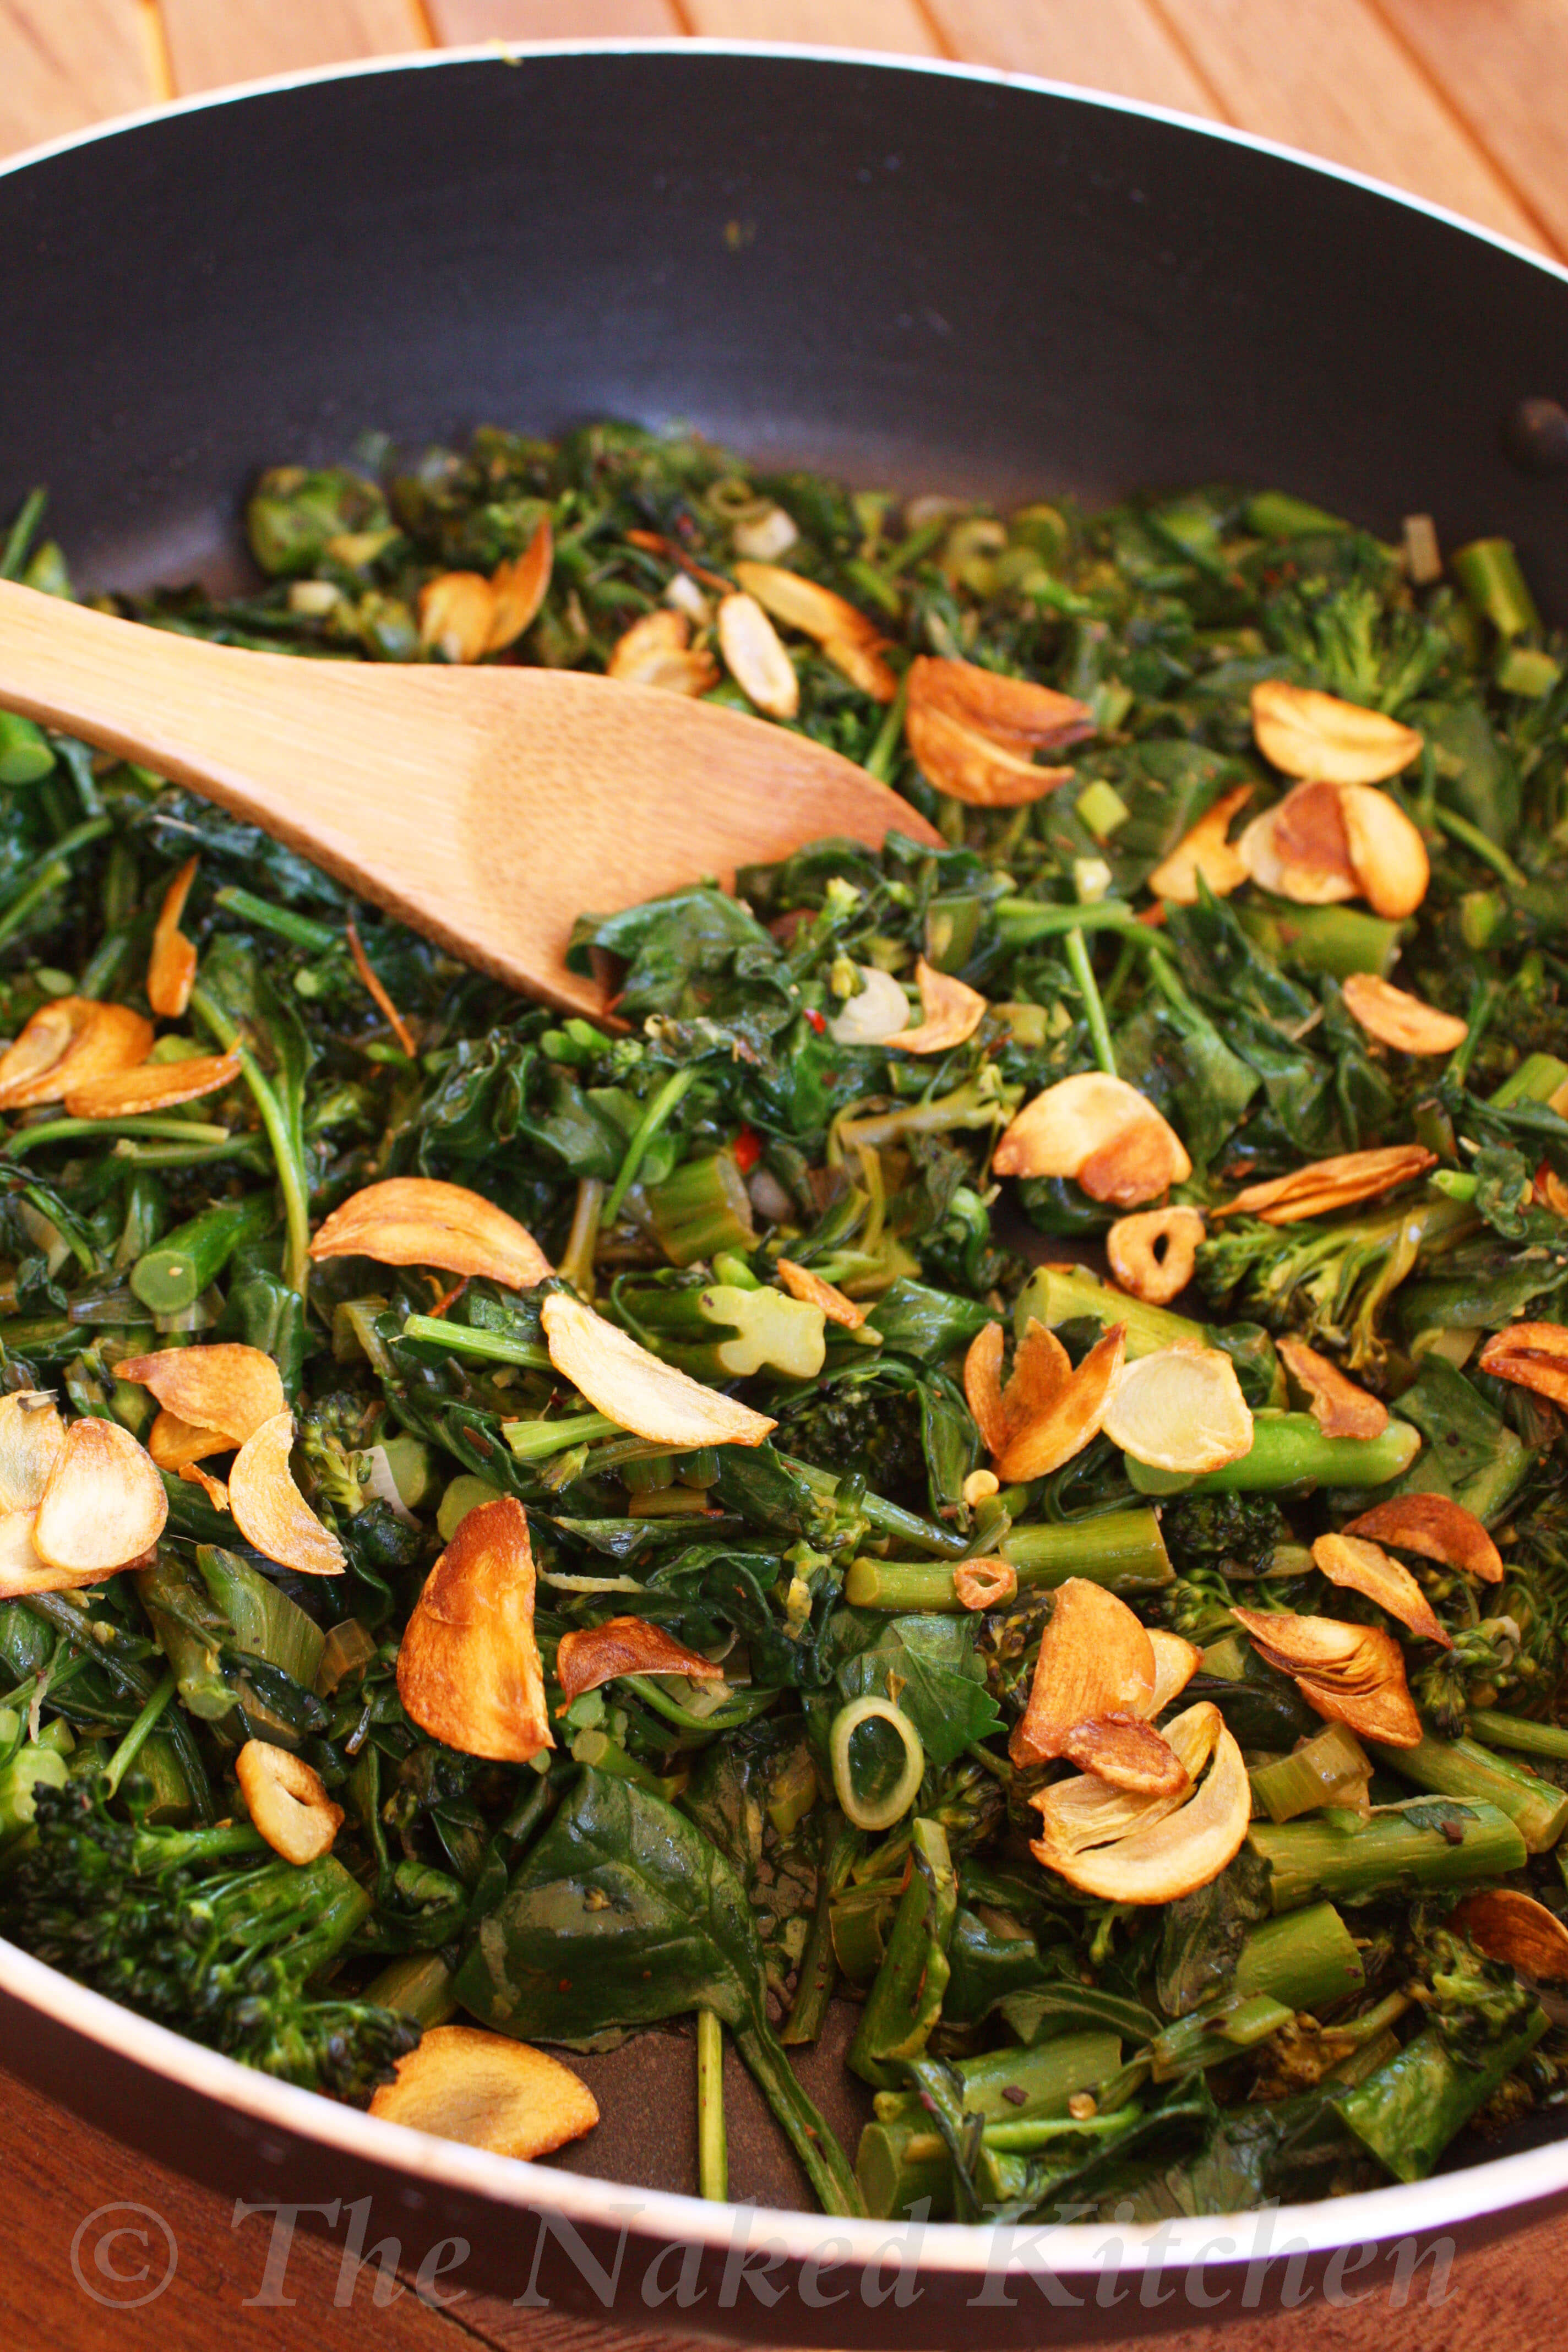 Very Green and Garlicky Sauté